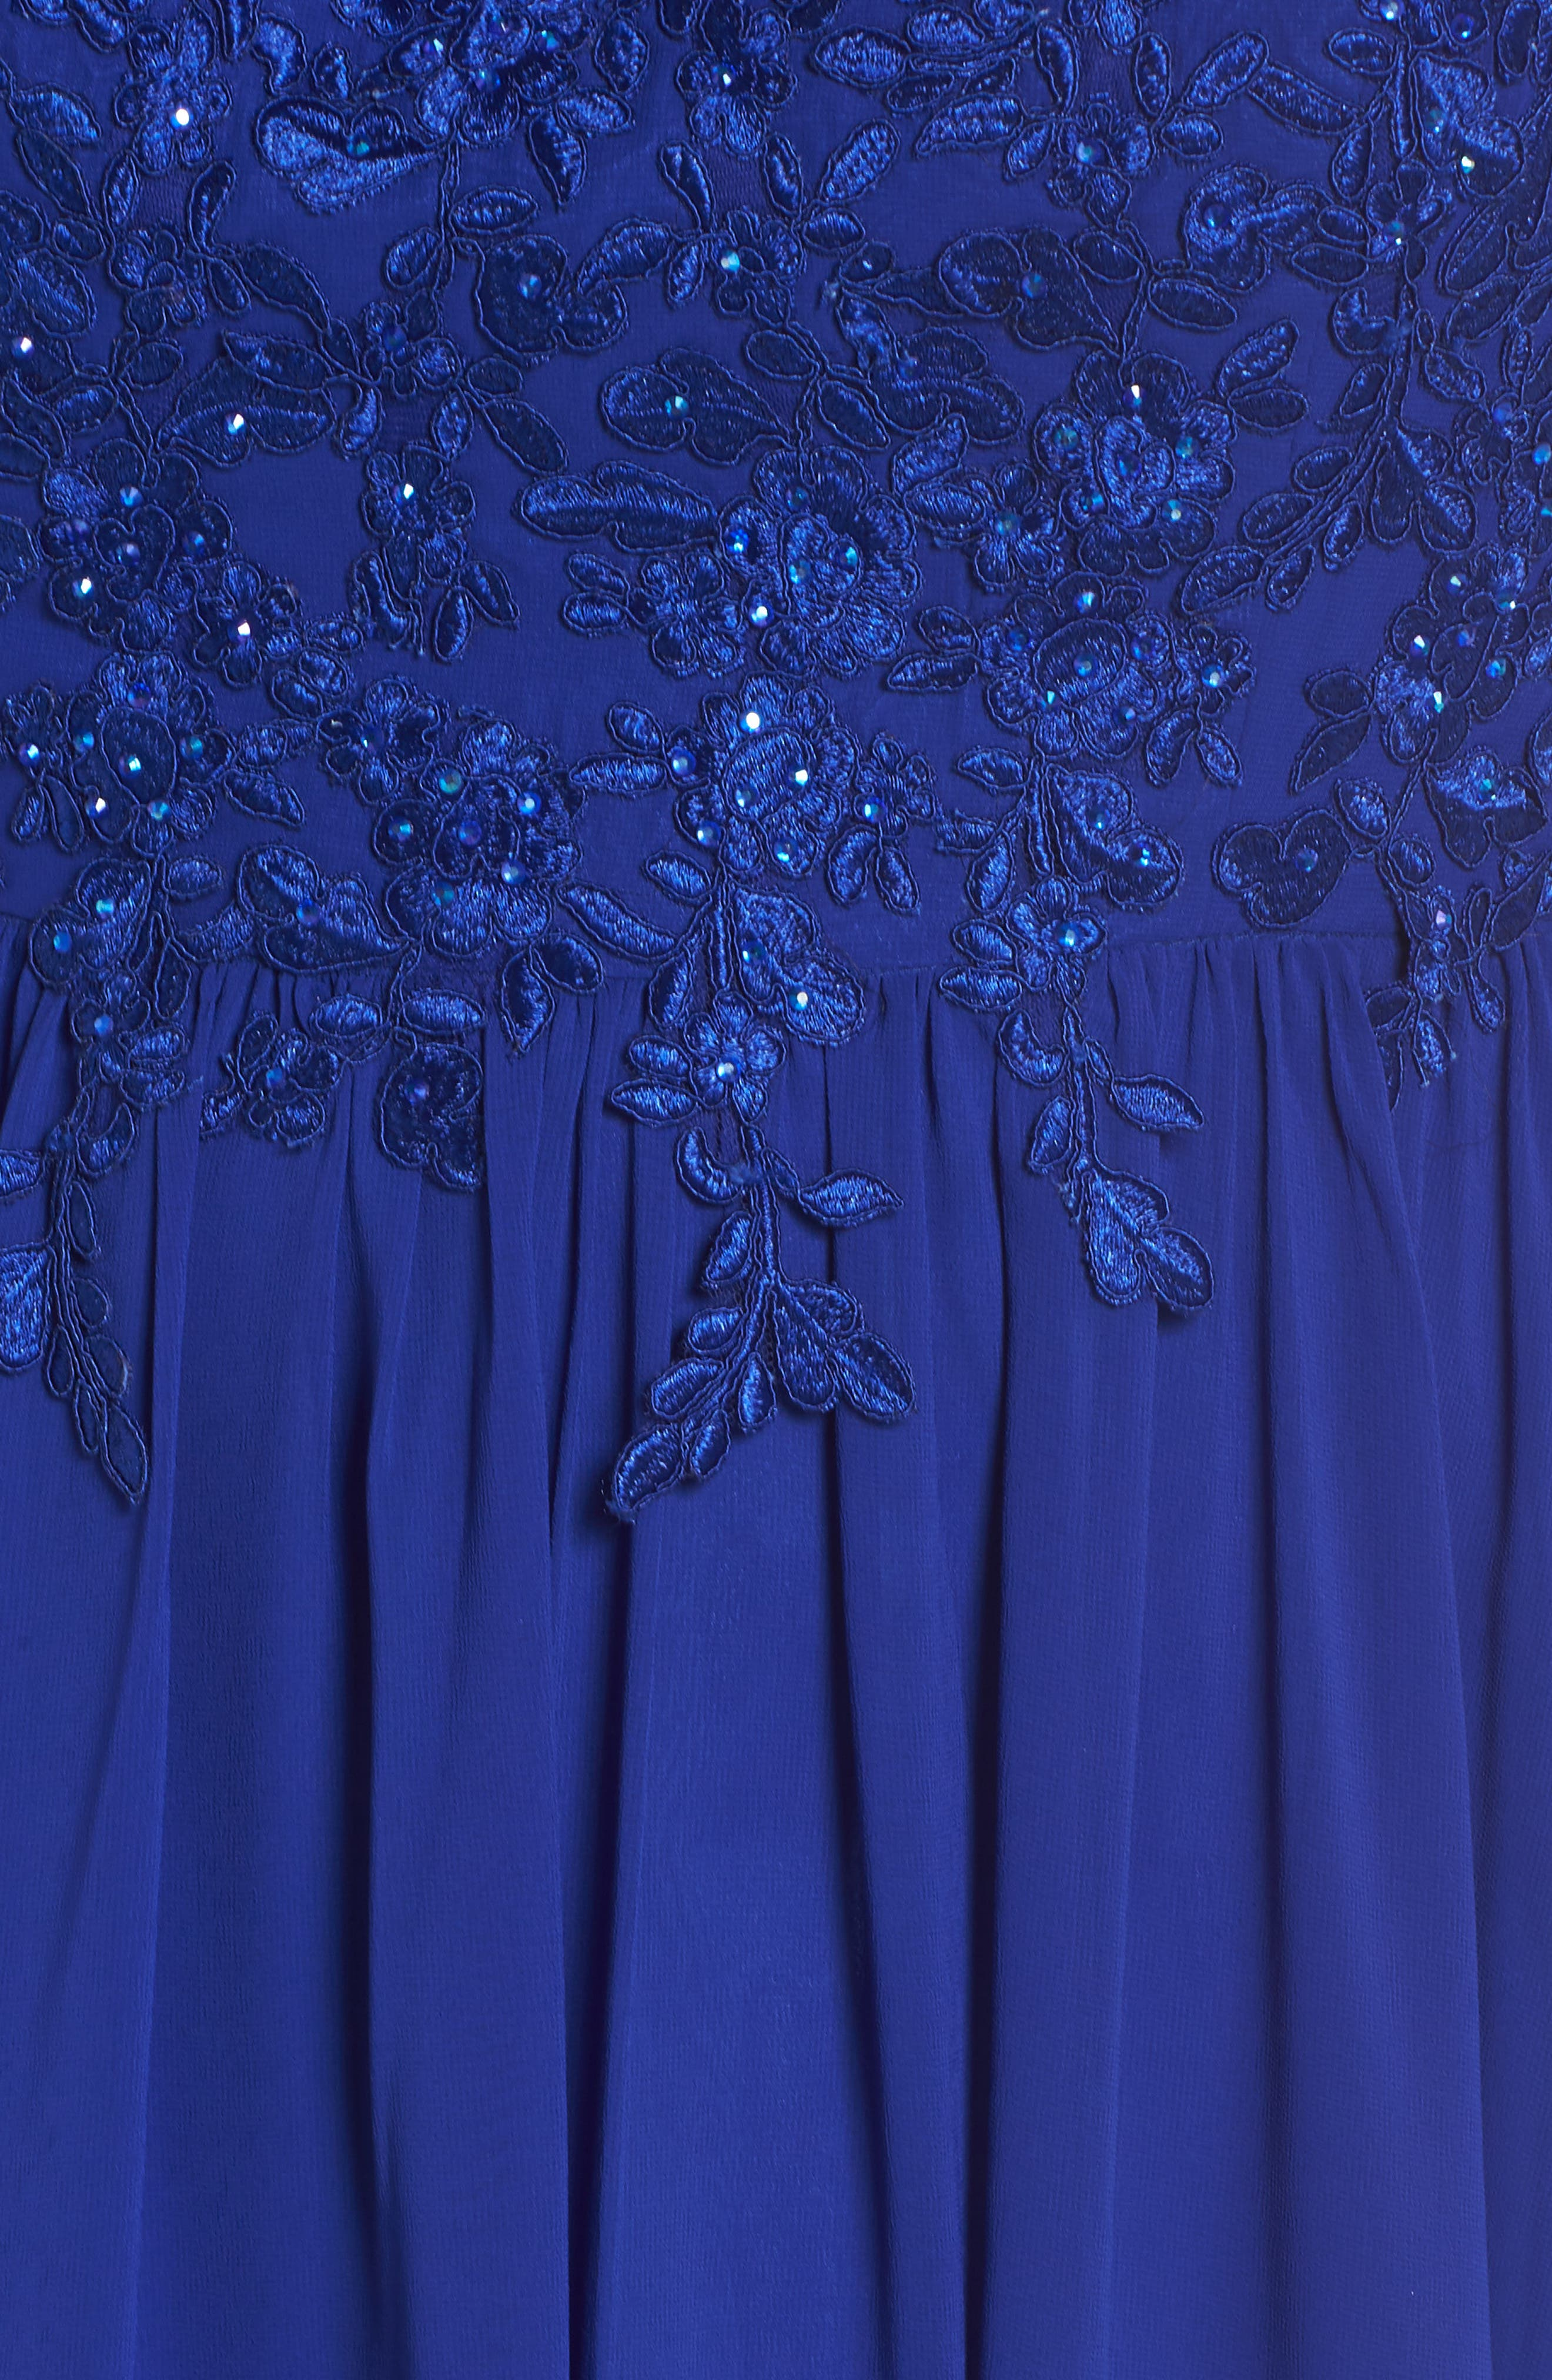 Embroidered Bodice Halter Top Maxi Dress,                             Alternate thumbnail 5, color,                             ROYAL